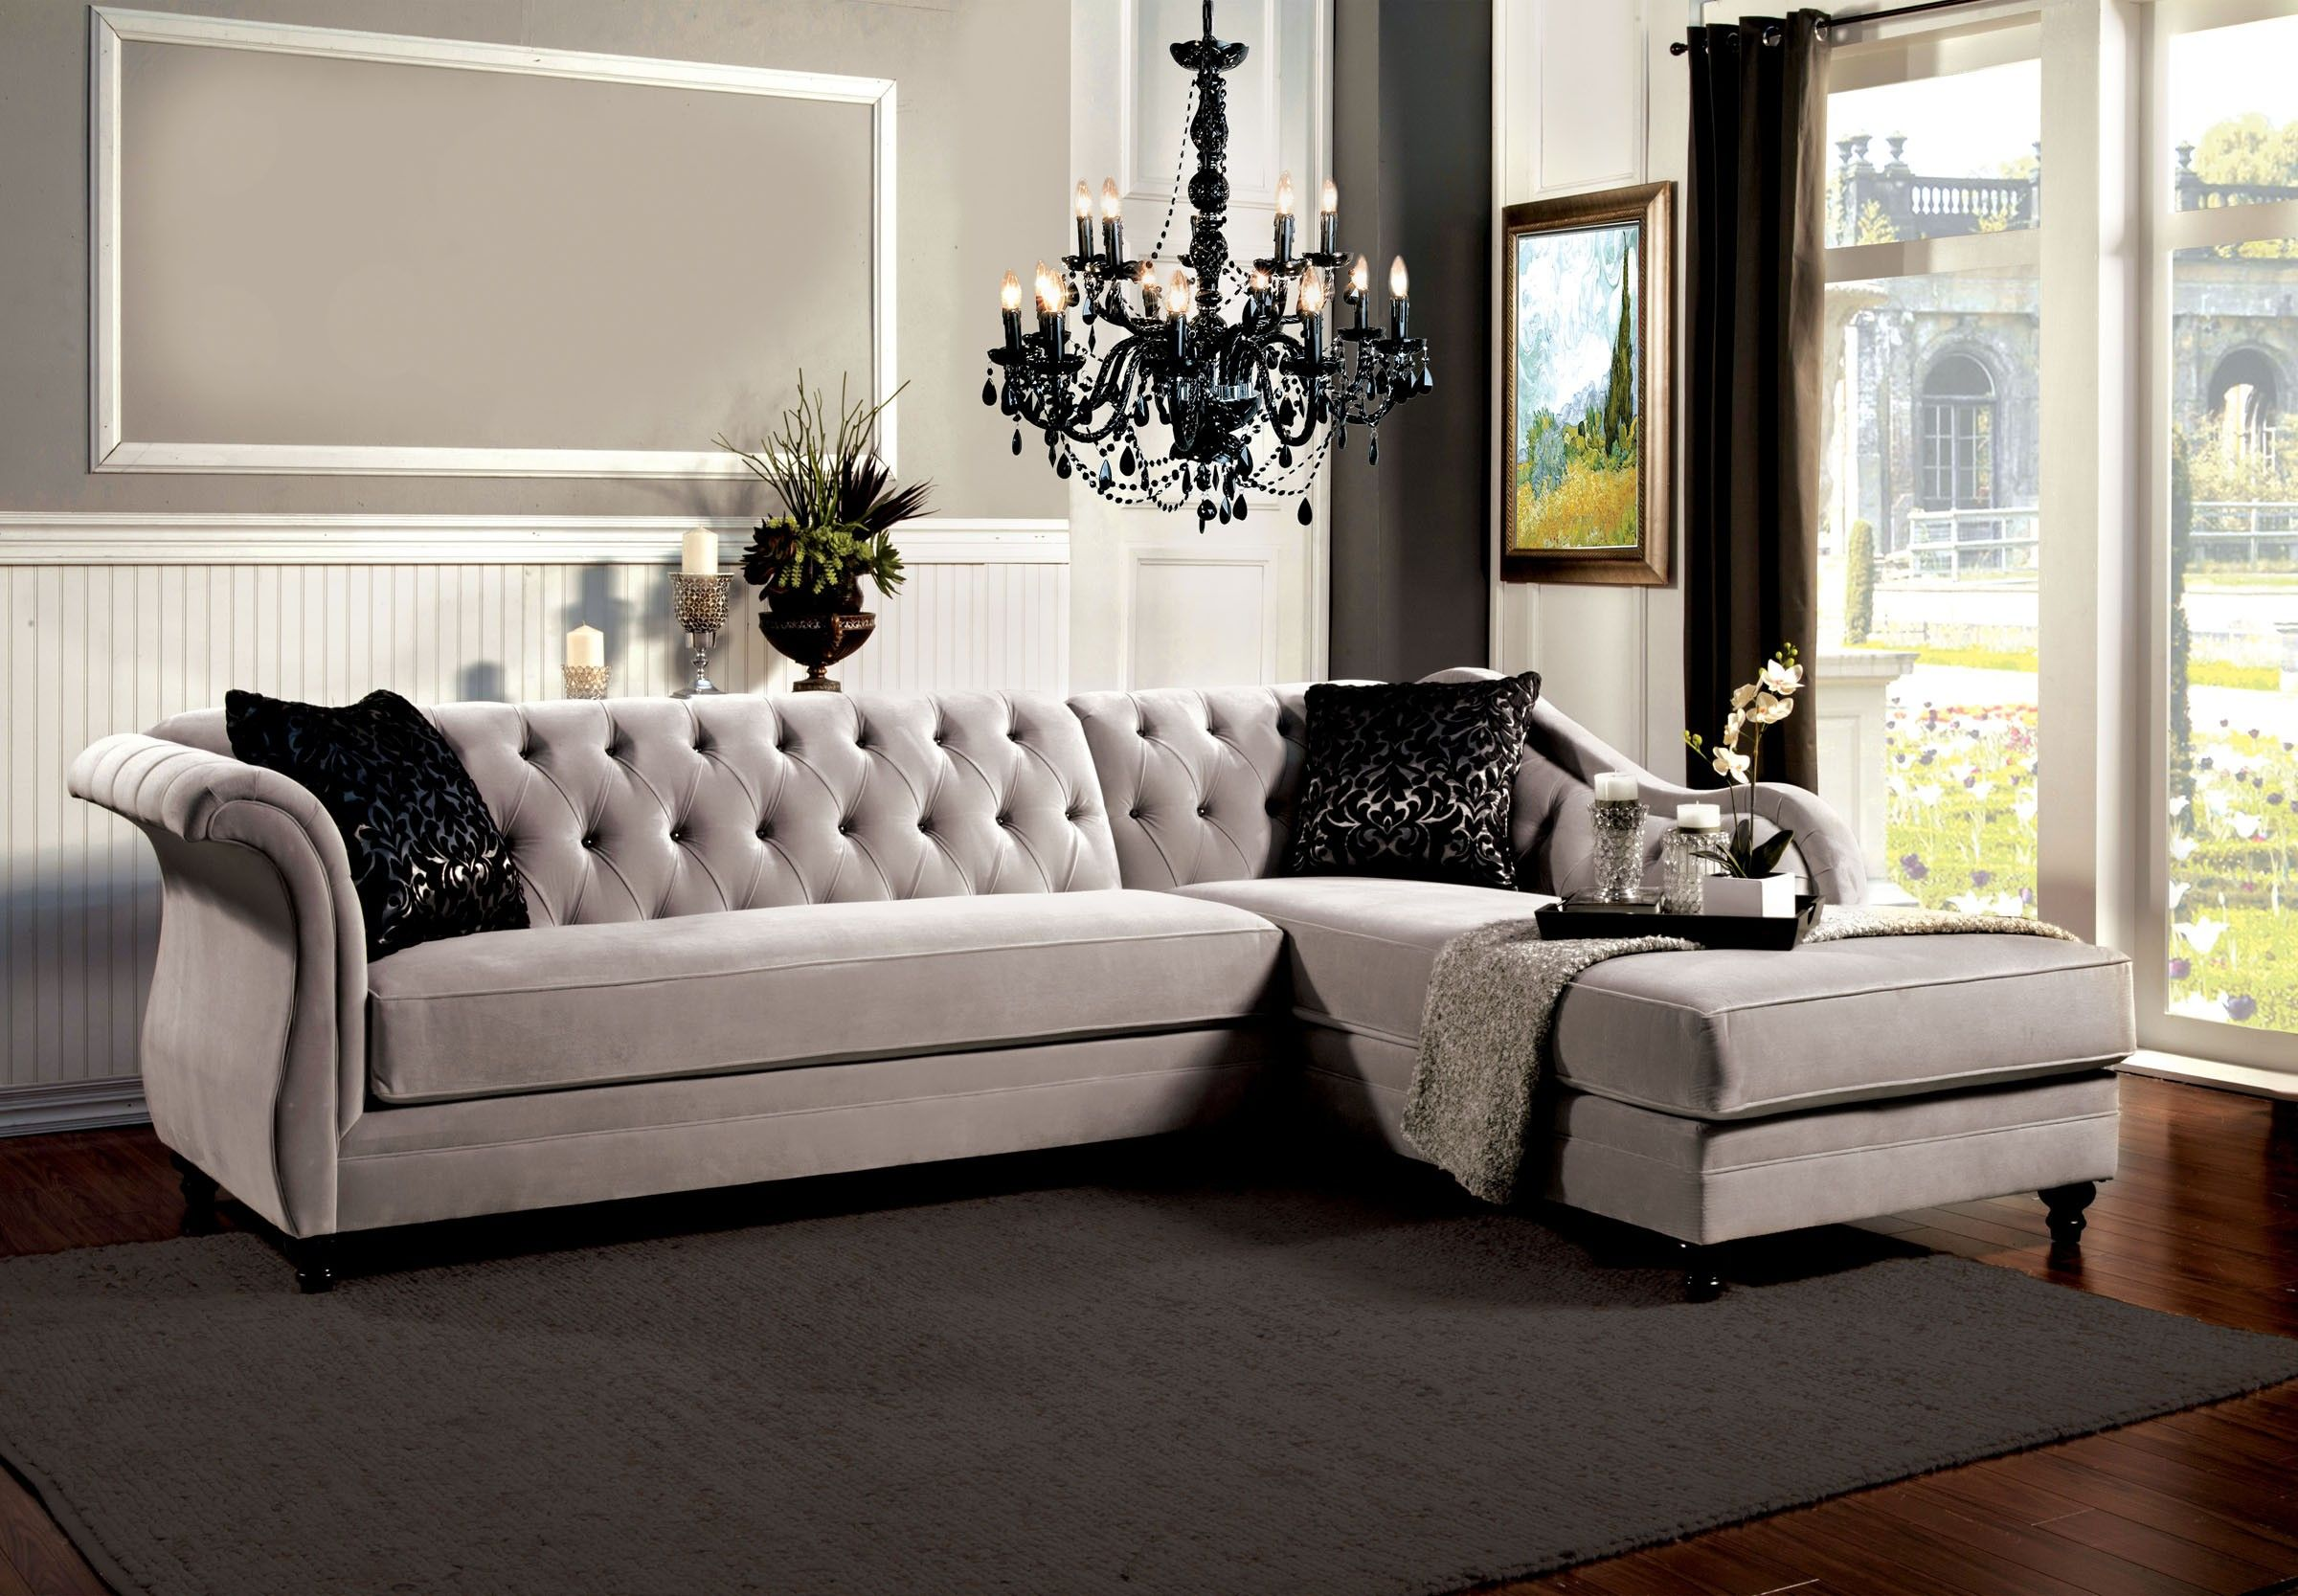 Sm2261 Sectional Sofa Furniture Of America Tufted Sectional Sofa Tufted Sectional